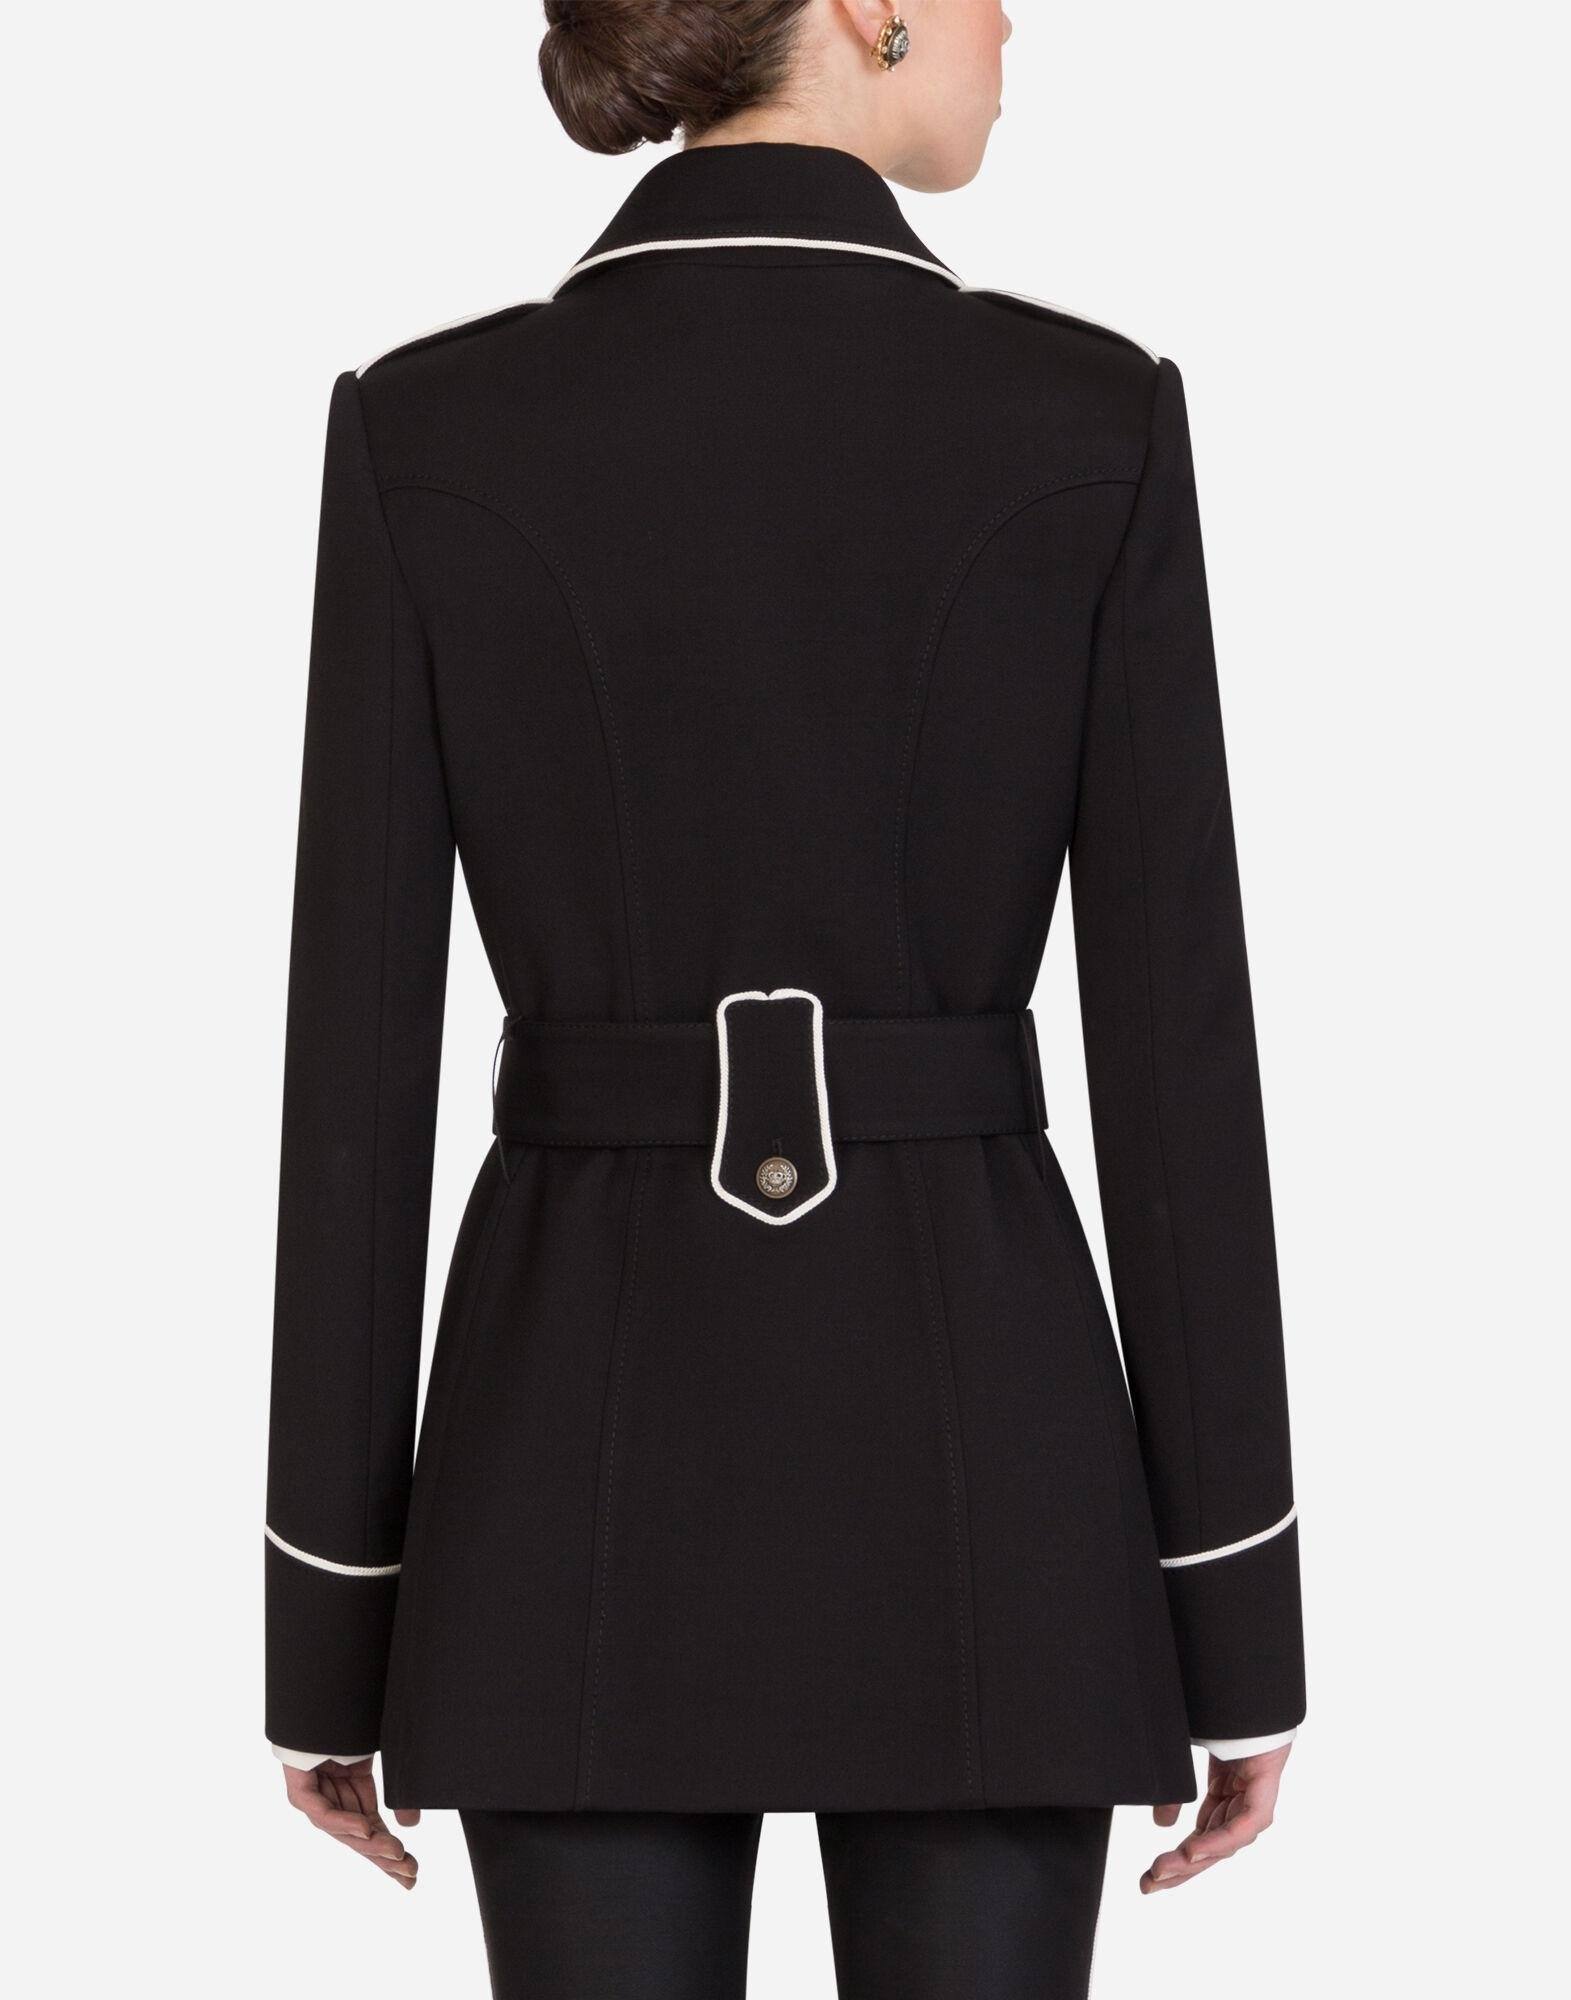 Woolen peacoat with decorative buttons 1